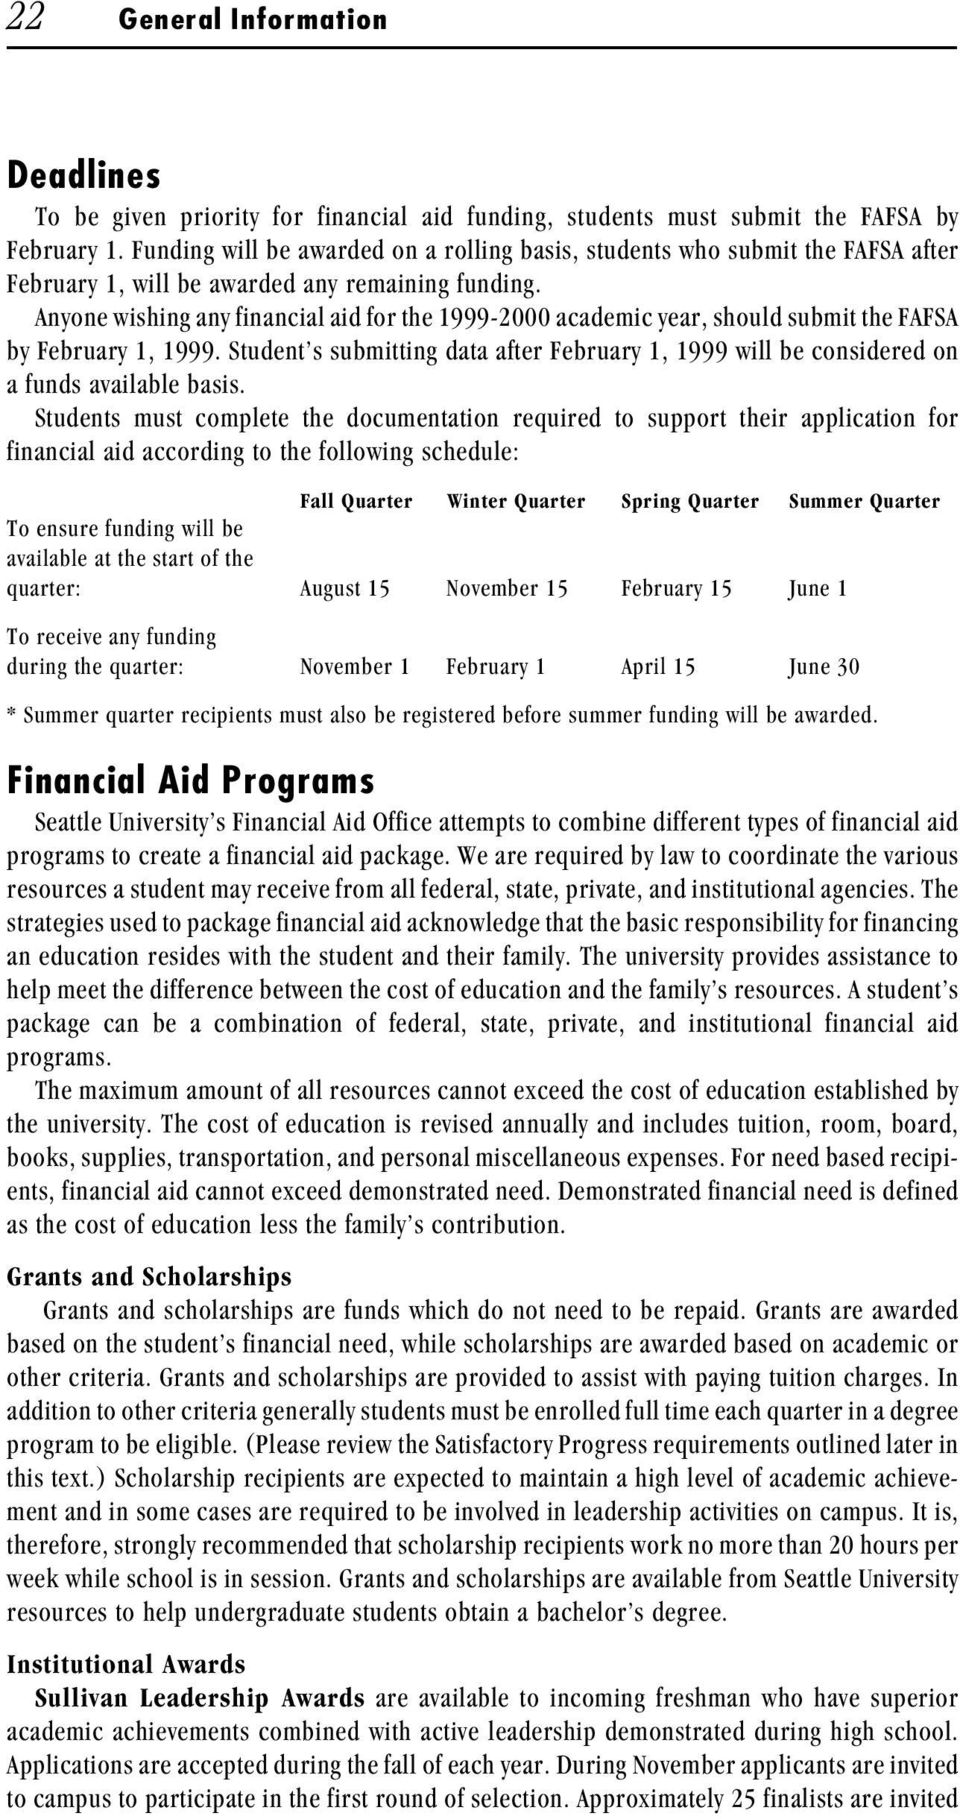 Anyone wishing any financial aid for the 1999-2000 academic year, should submit the FAFSA by February 1, 1999.